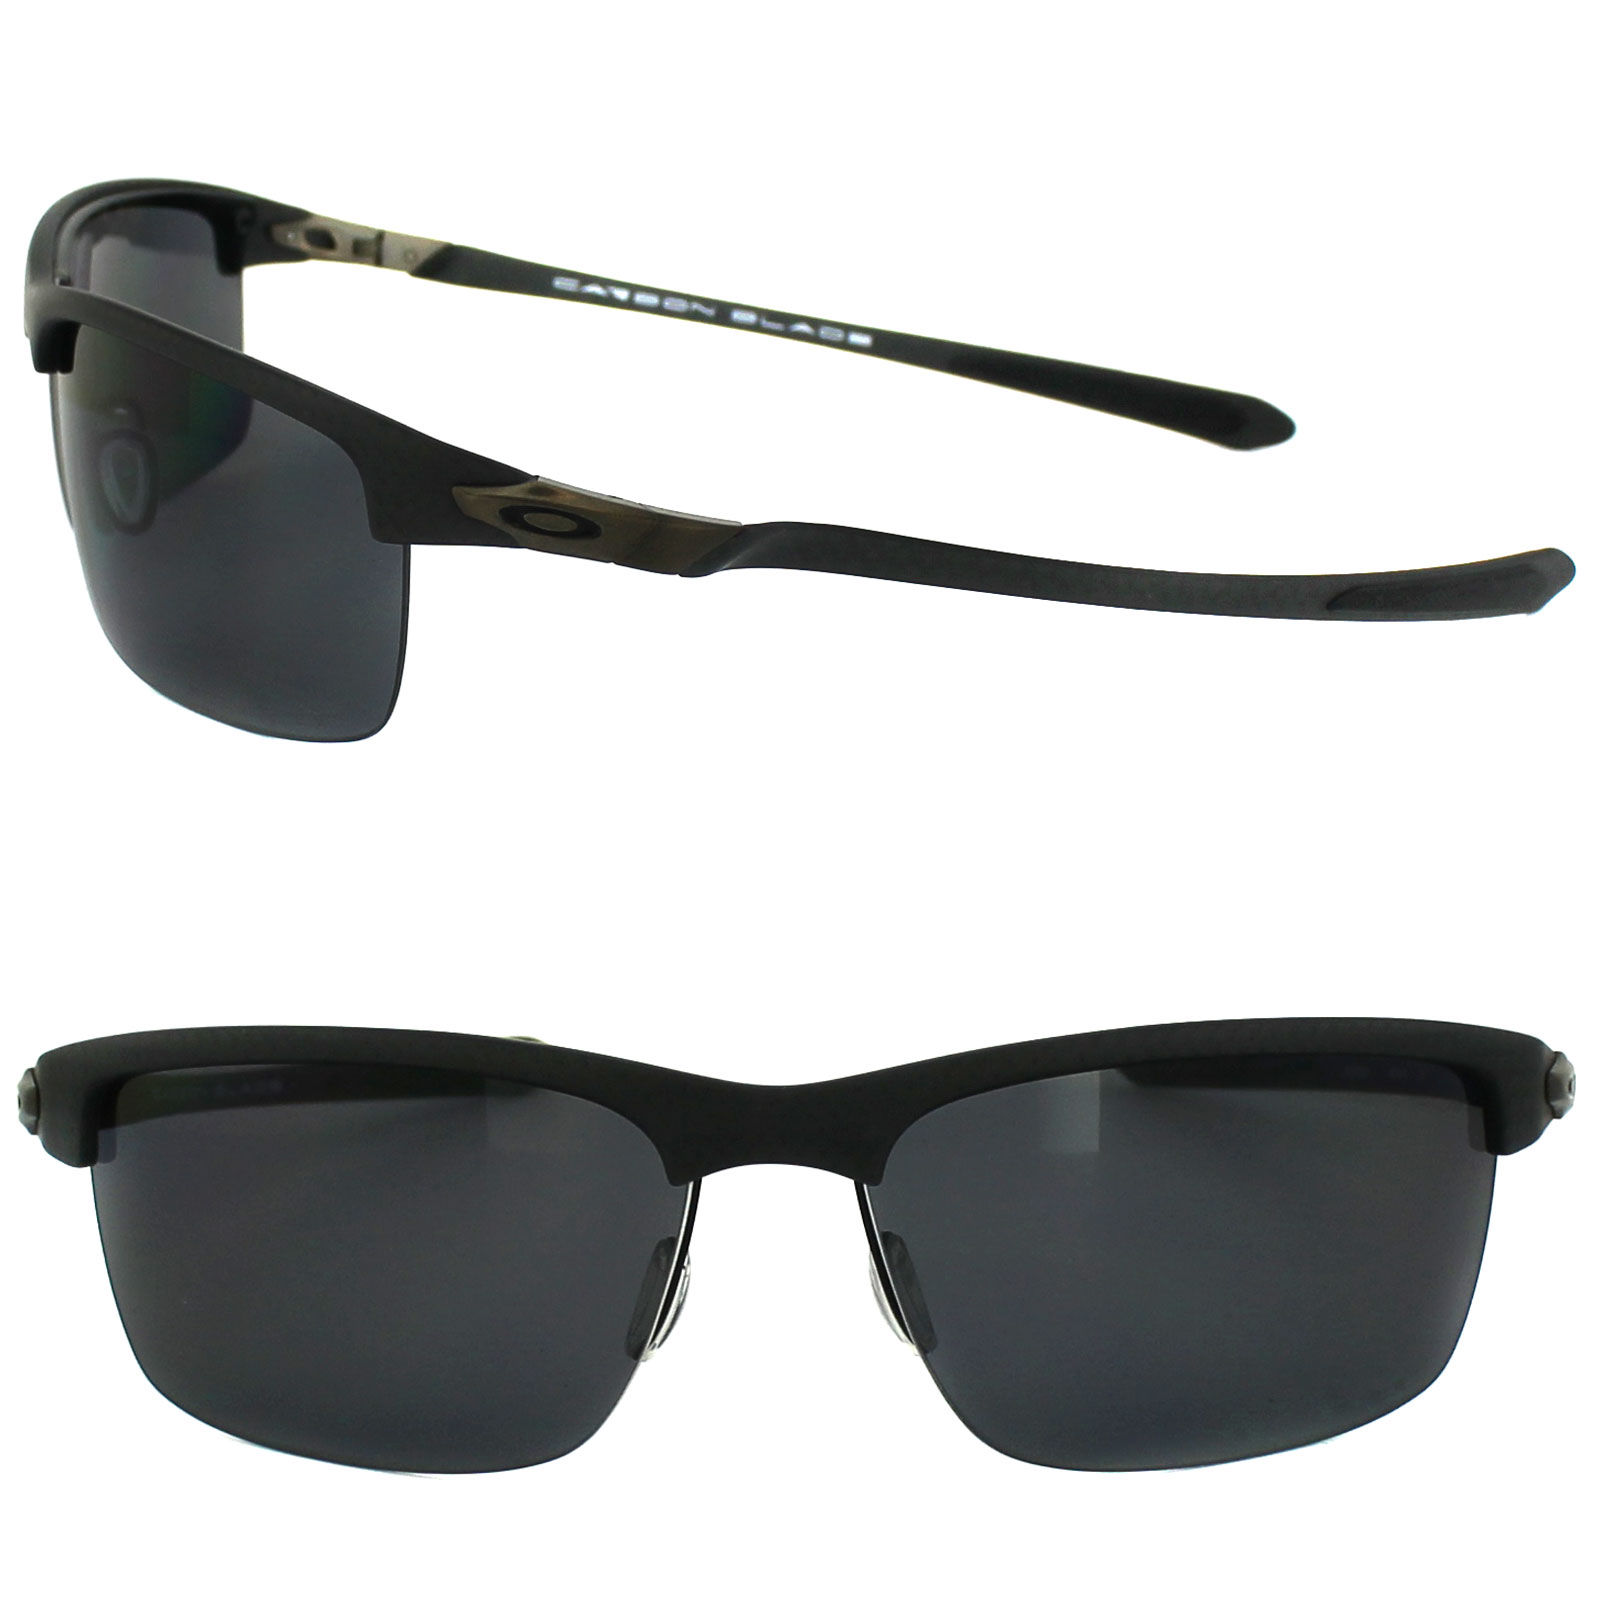 Cheap Oakley Carbon Blade Sunglasses - Discounted Sunglasses